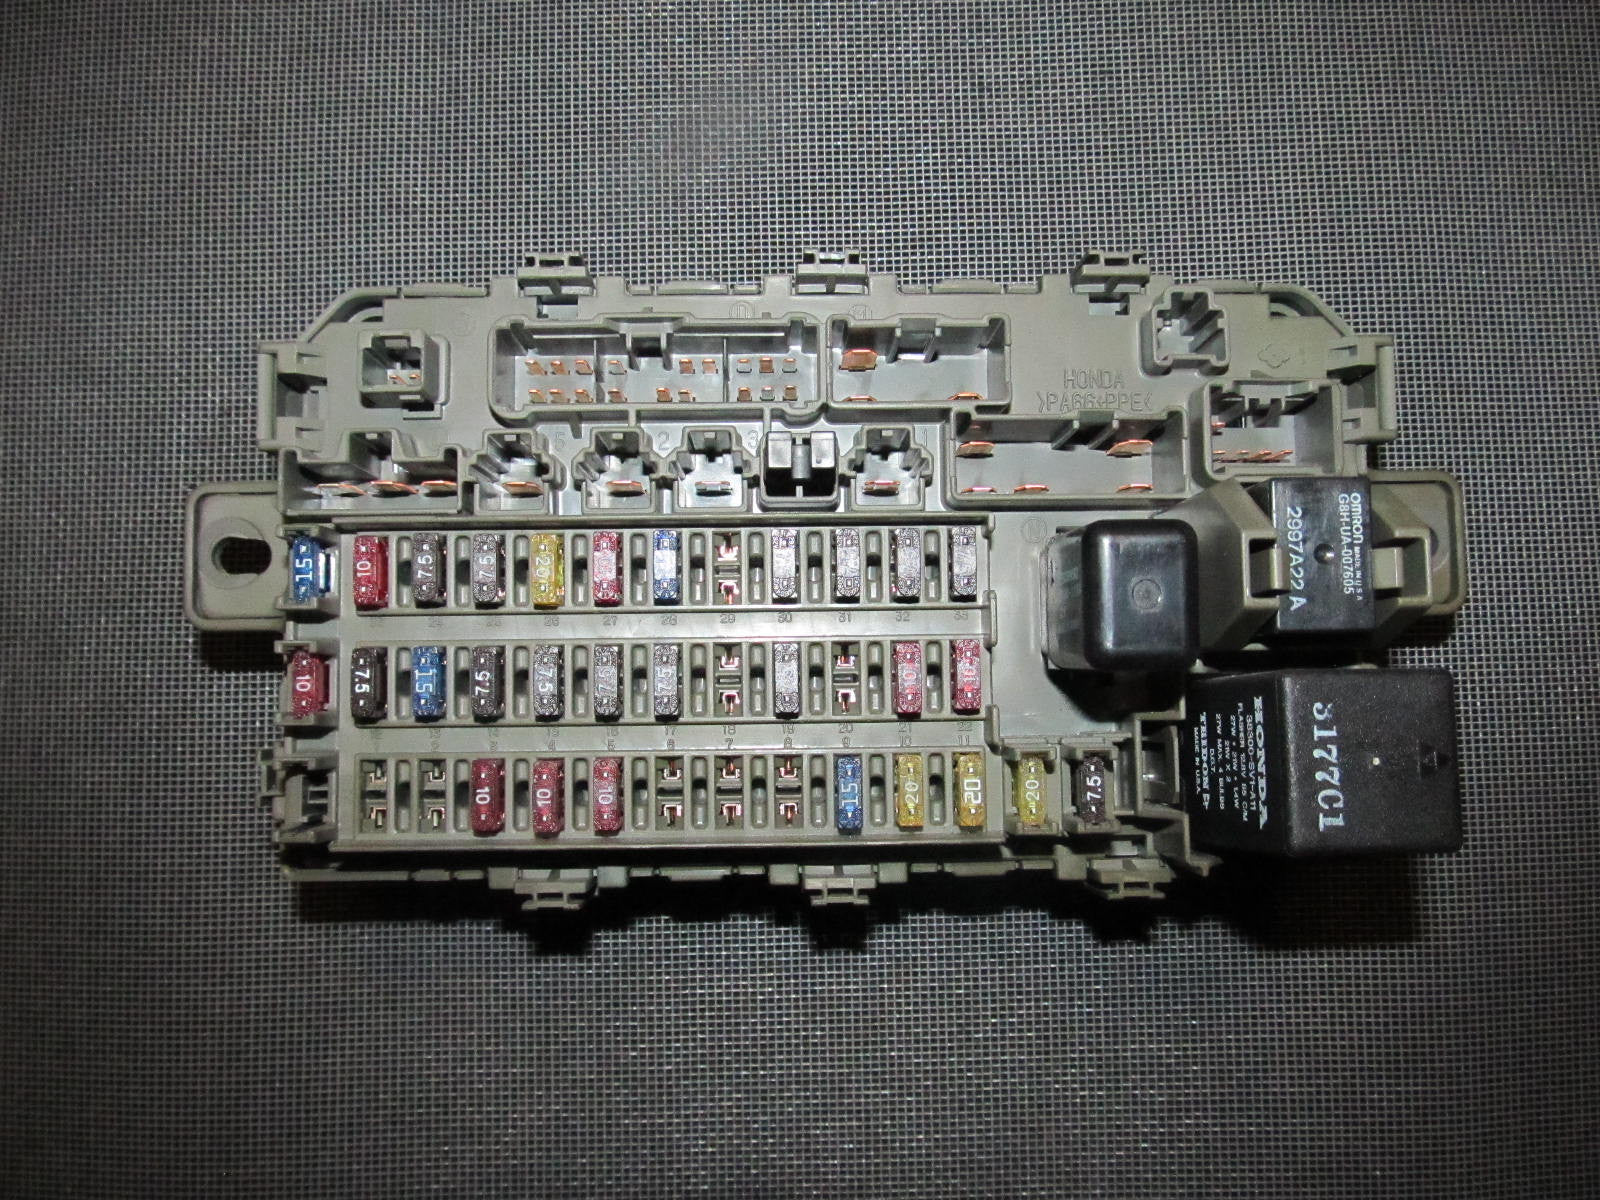 96 97 98 99 00 honda civic oem interior fuse box with relay rh autopartone com 99 honda civic fuse box diagram 99 civic interior fuse box